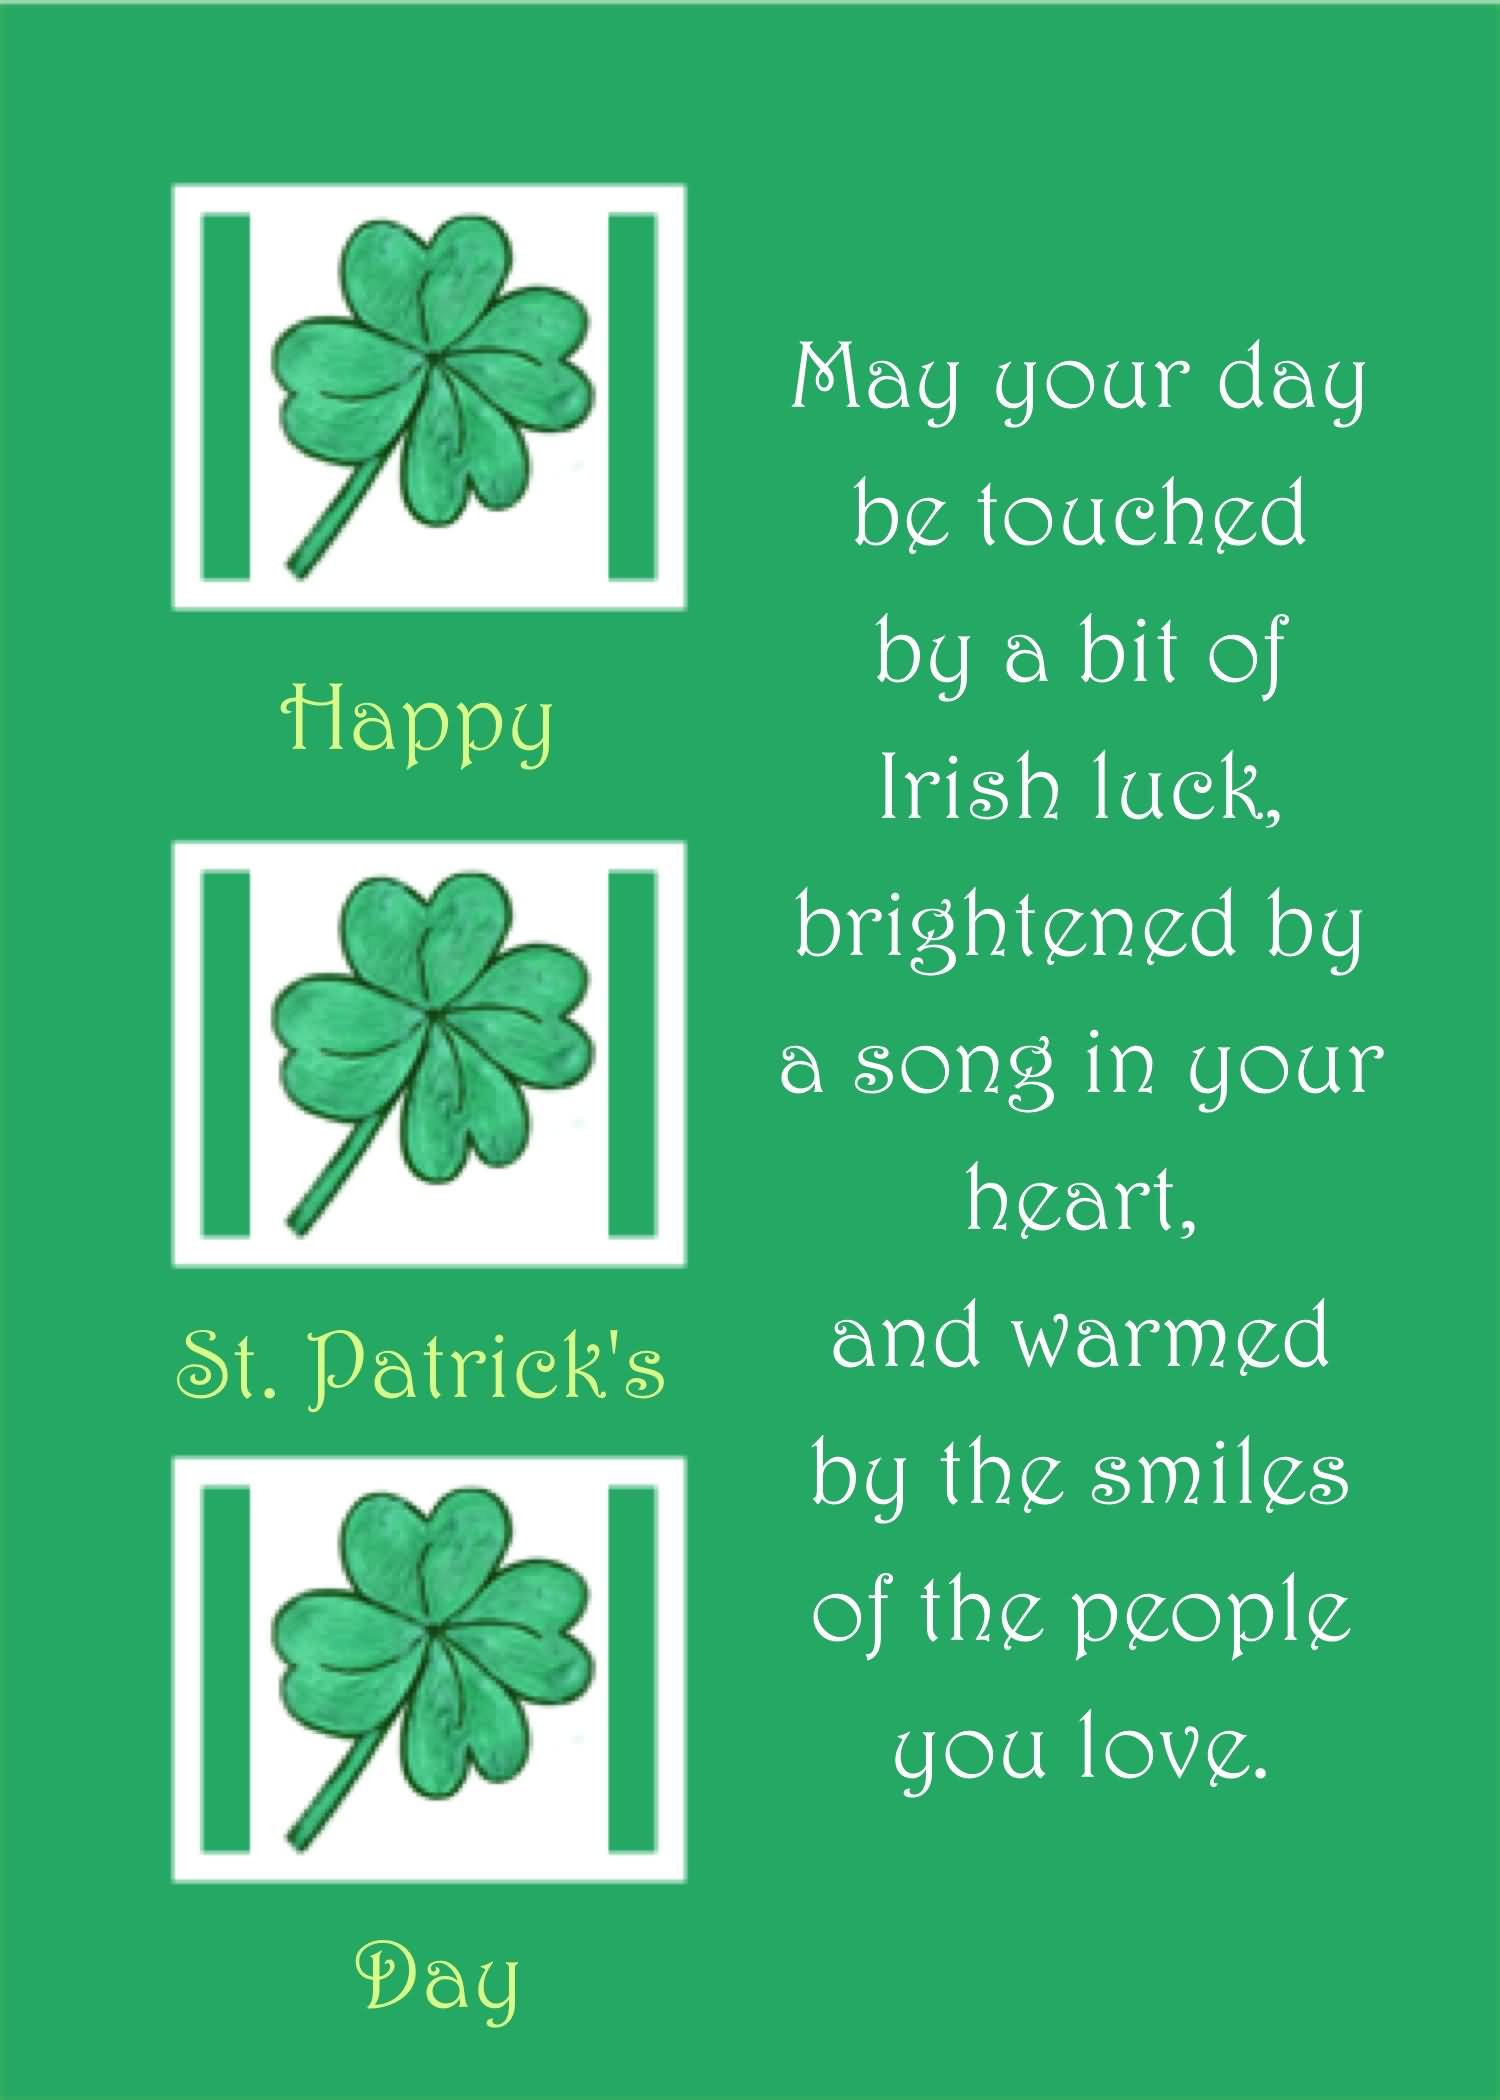 Happy St. Patrick's Day Warmed Wishes Image